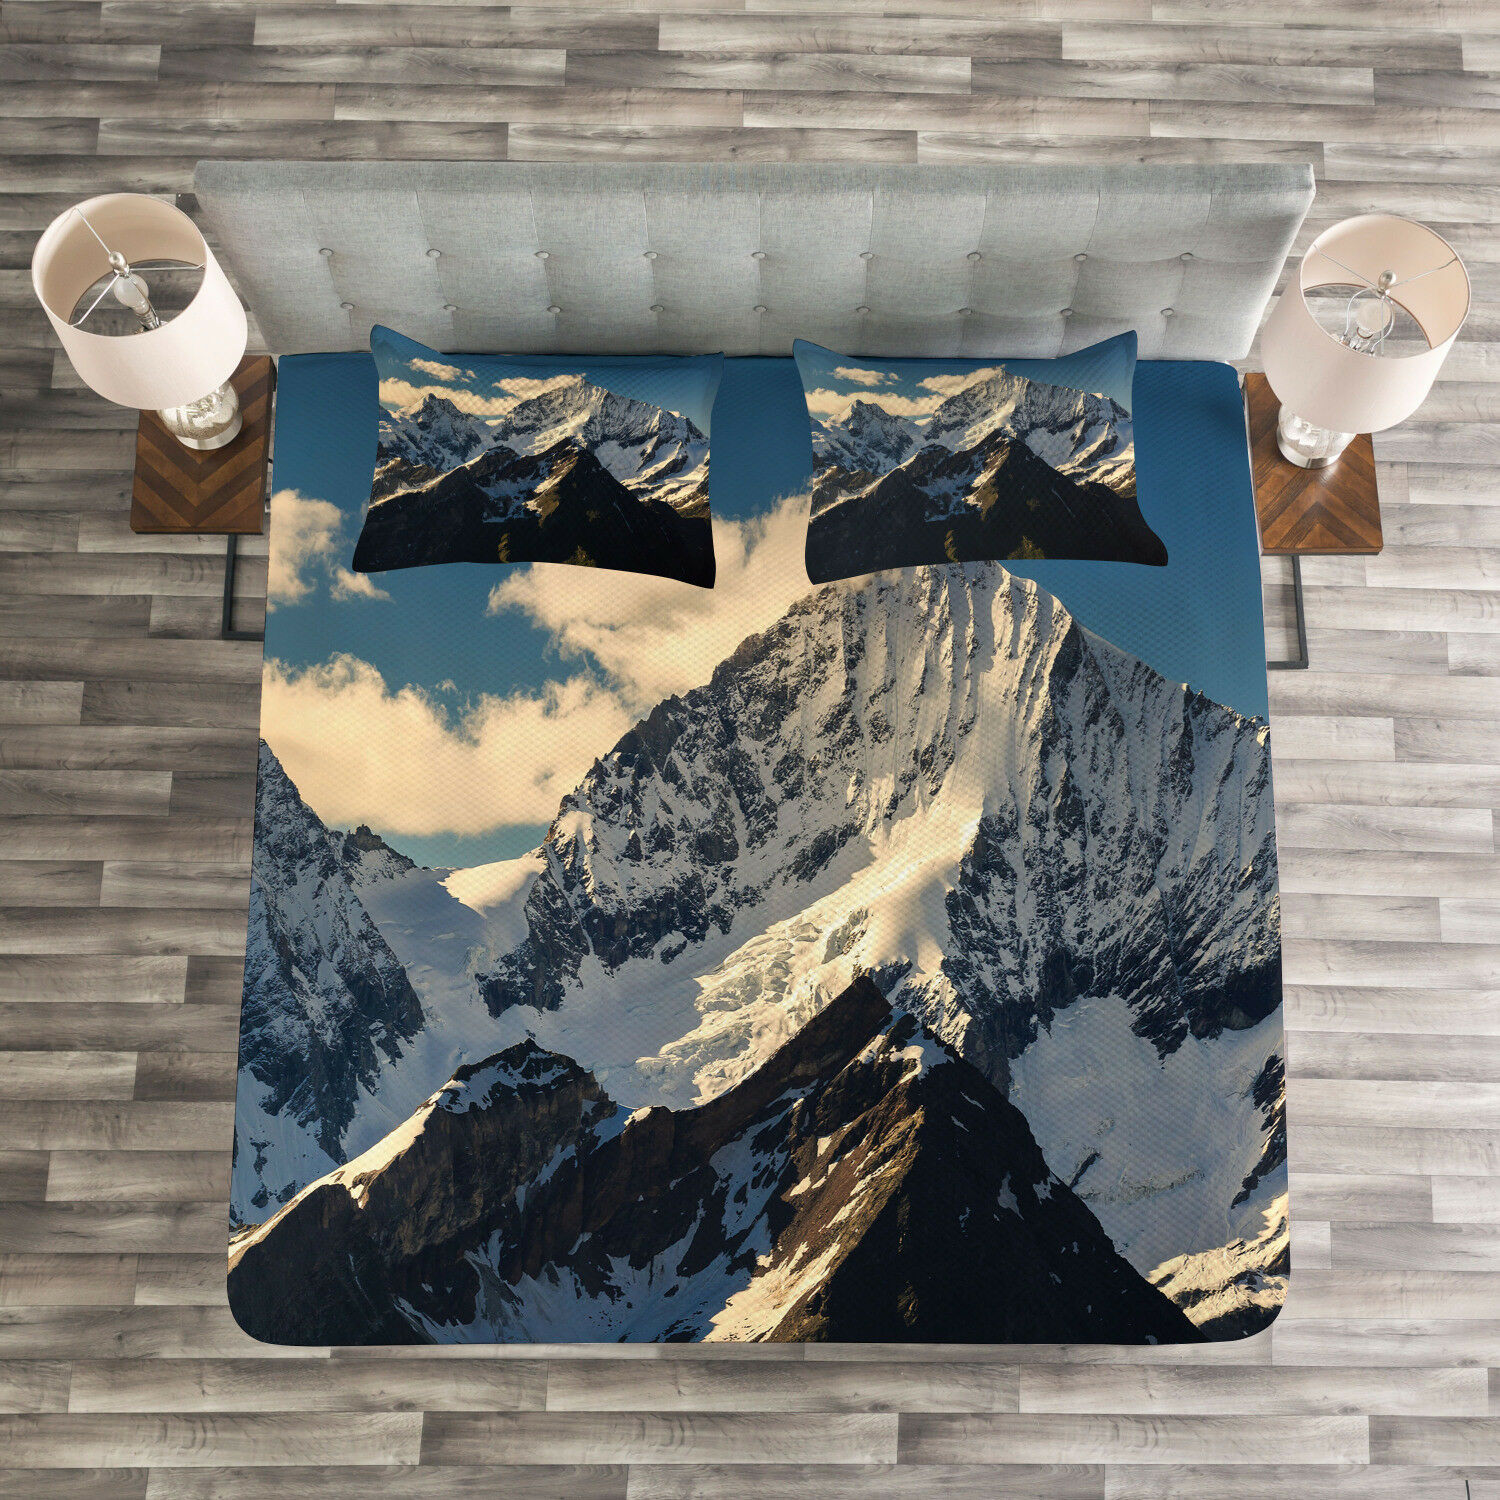 Nature Quilted Bedspread & Pillow Shams Set, View of Alps Mountain Print